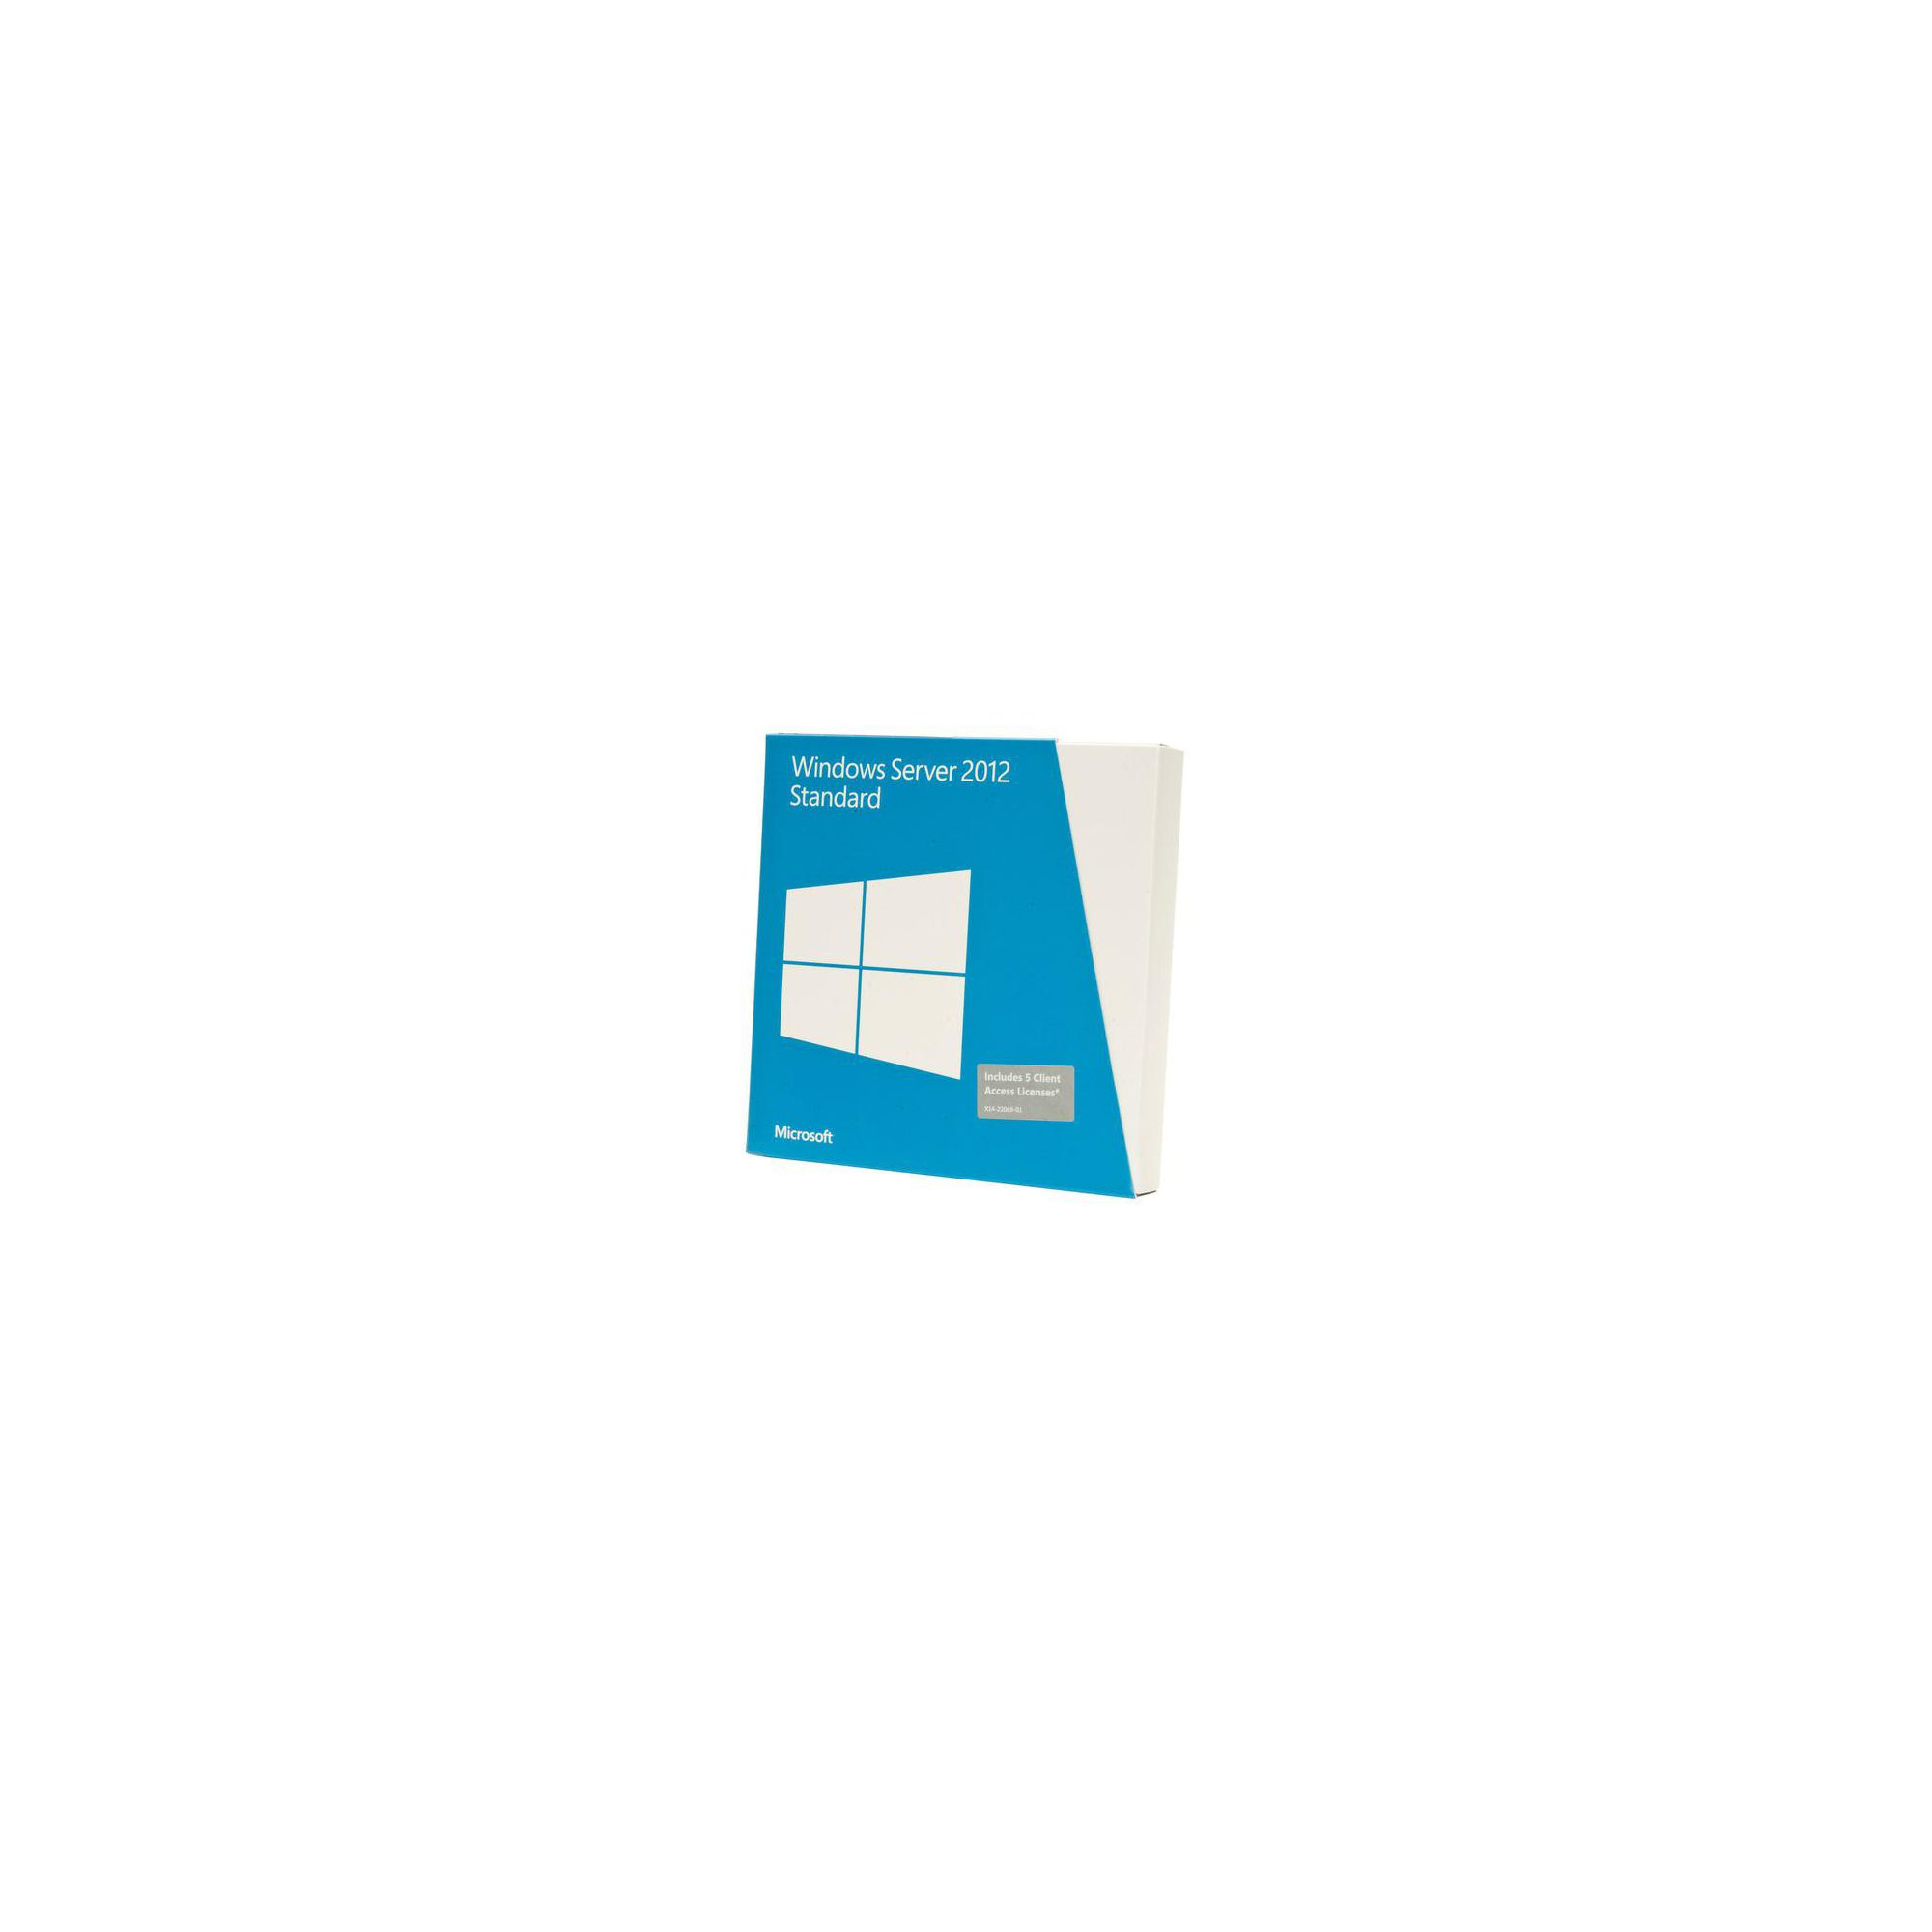 OEM - Microsoft Windows Server 2012 Standard Edition 2 CPU/2 Virtual Machines (Single Pack) at Tesco Direct